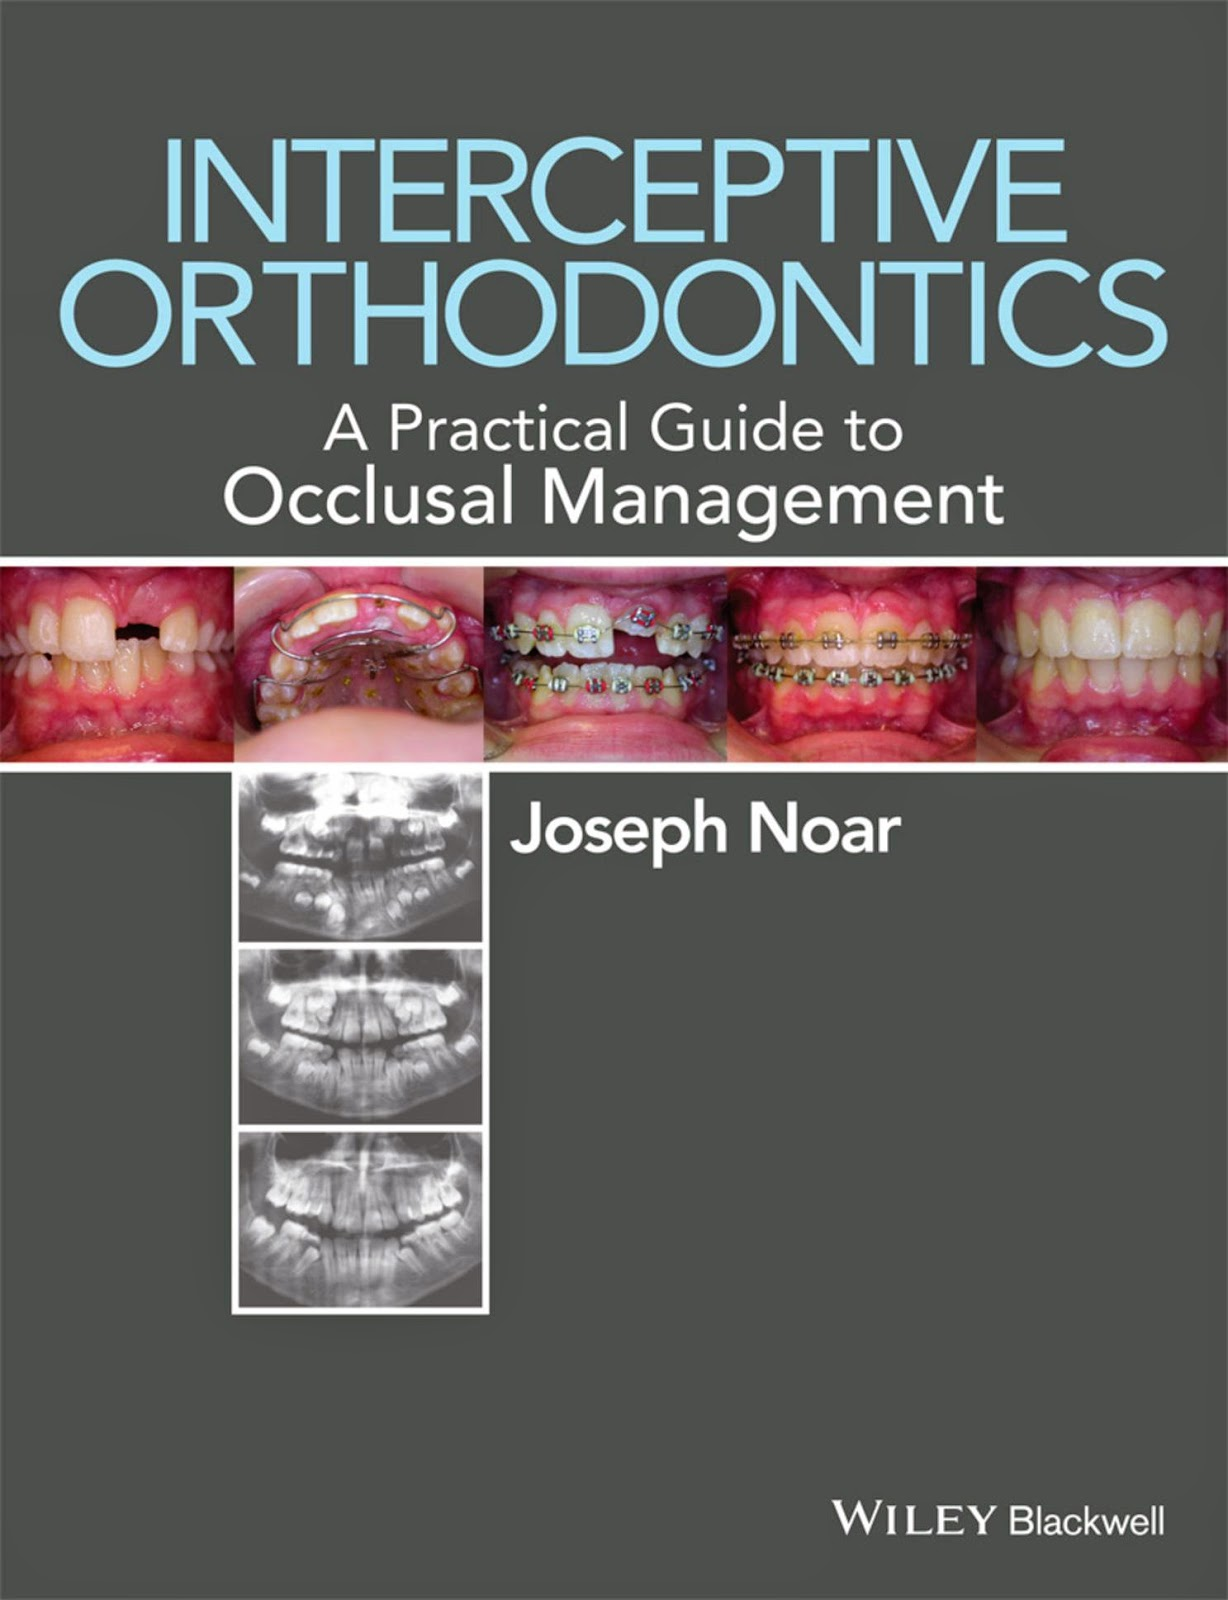 Interceptive Orthodontics ... A Practical Guide to Occlusal Management - Joseph Noar - 1st.ed. © 2014.PDF